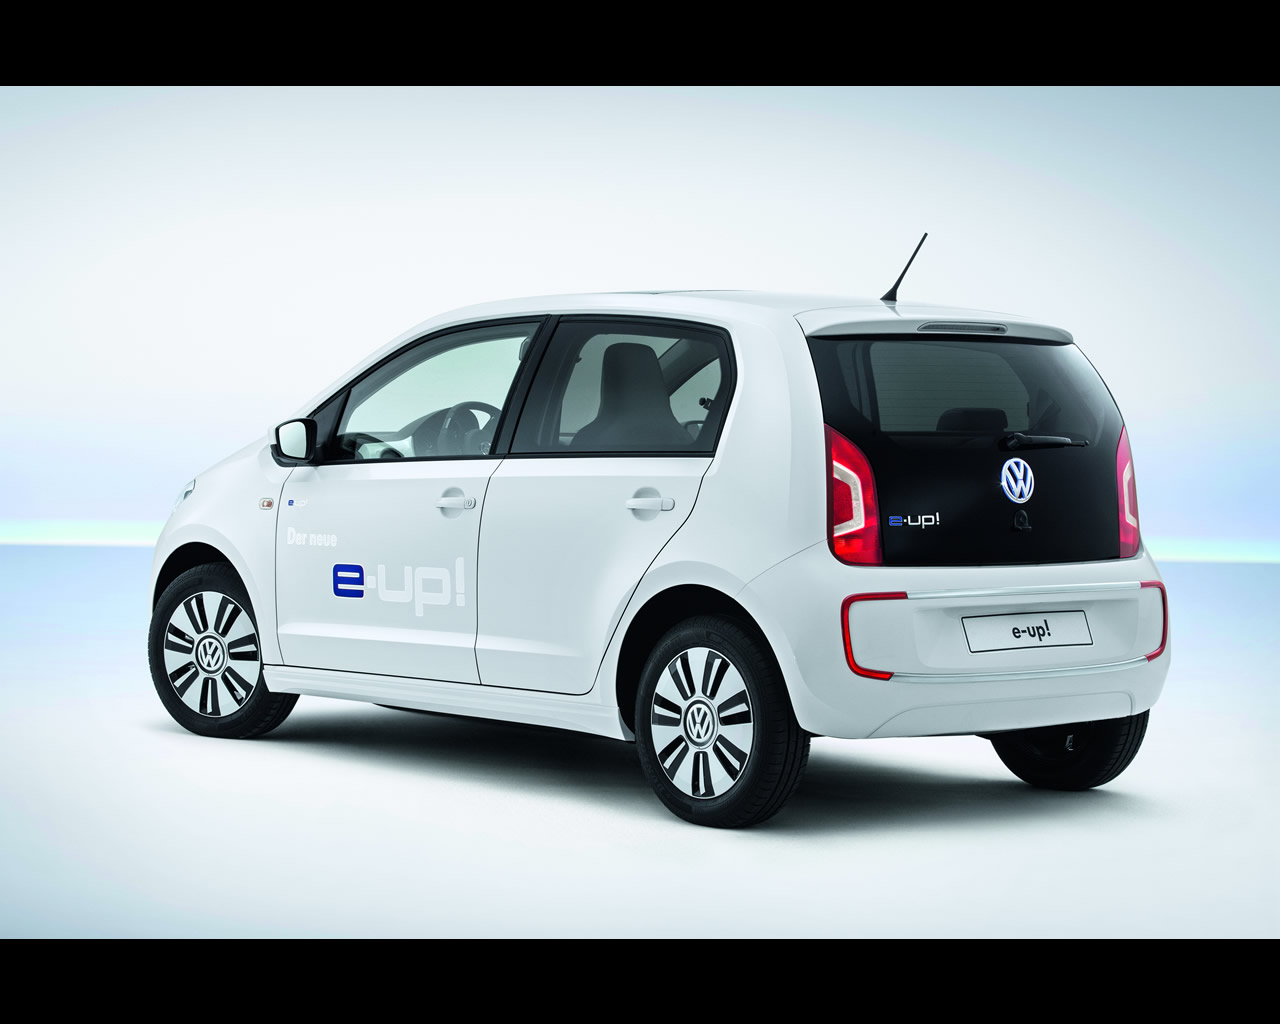 volkswagen e golf and e up electric cars 2013. Black Bedroom Furniture Sets. Home Design Ideas